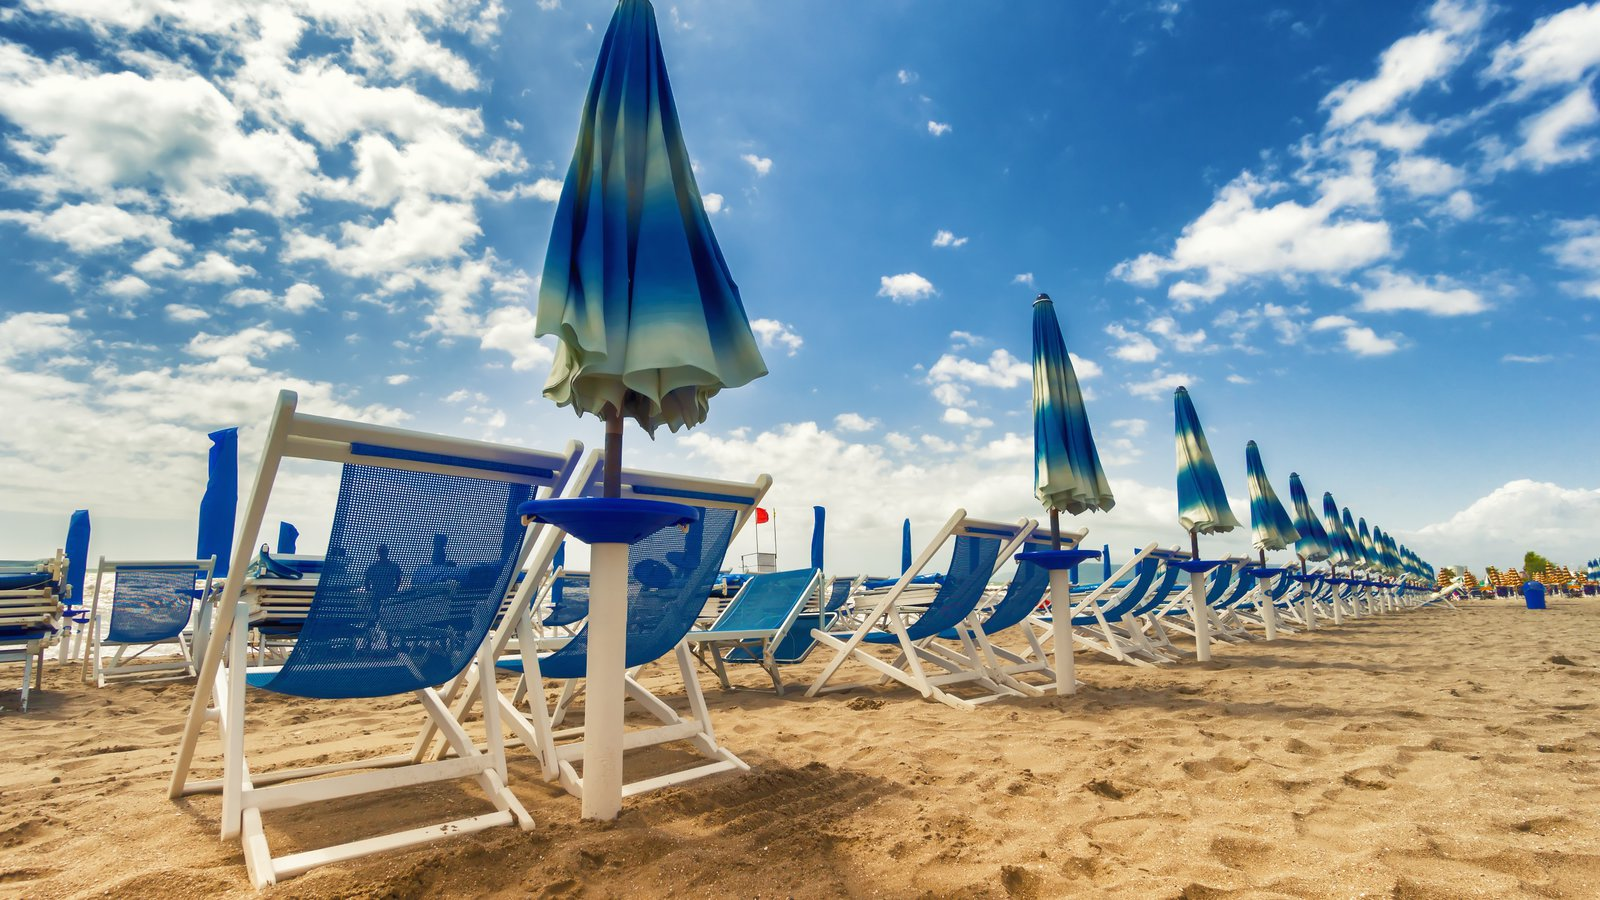 Versilia showing a luxury hotel or resort and general coastal views